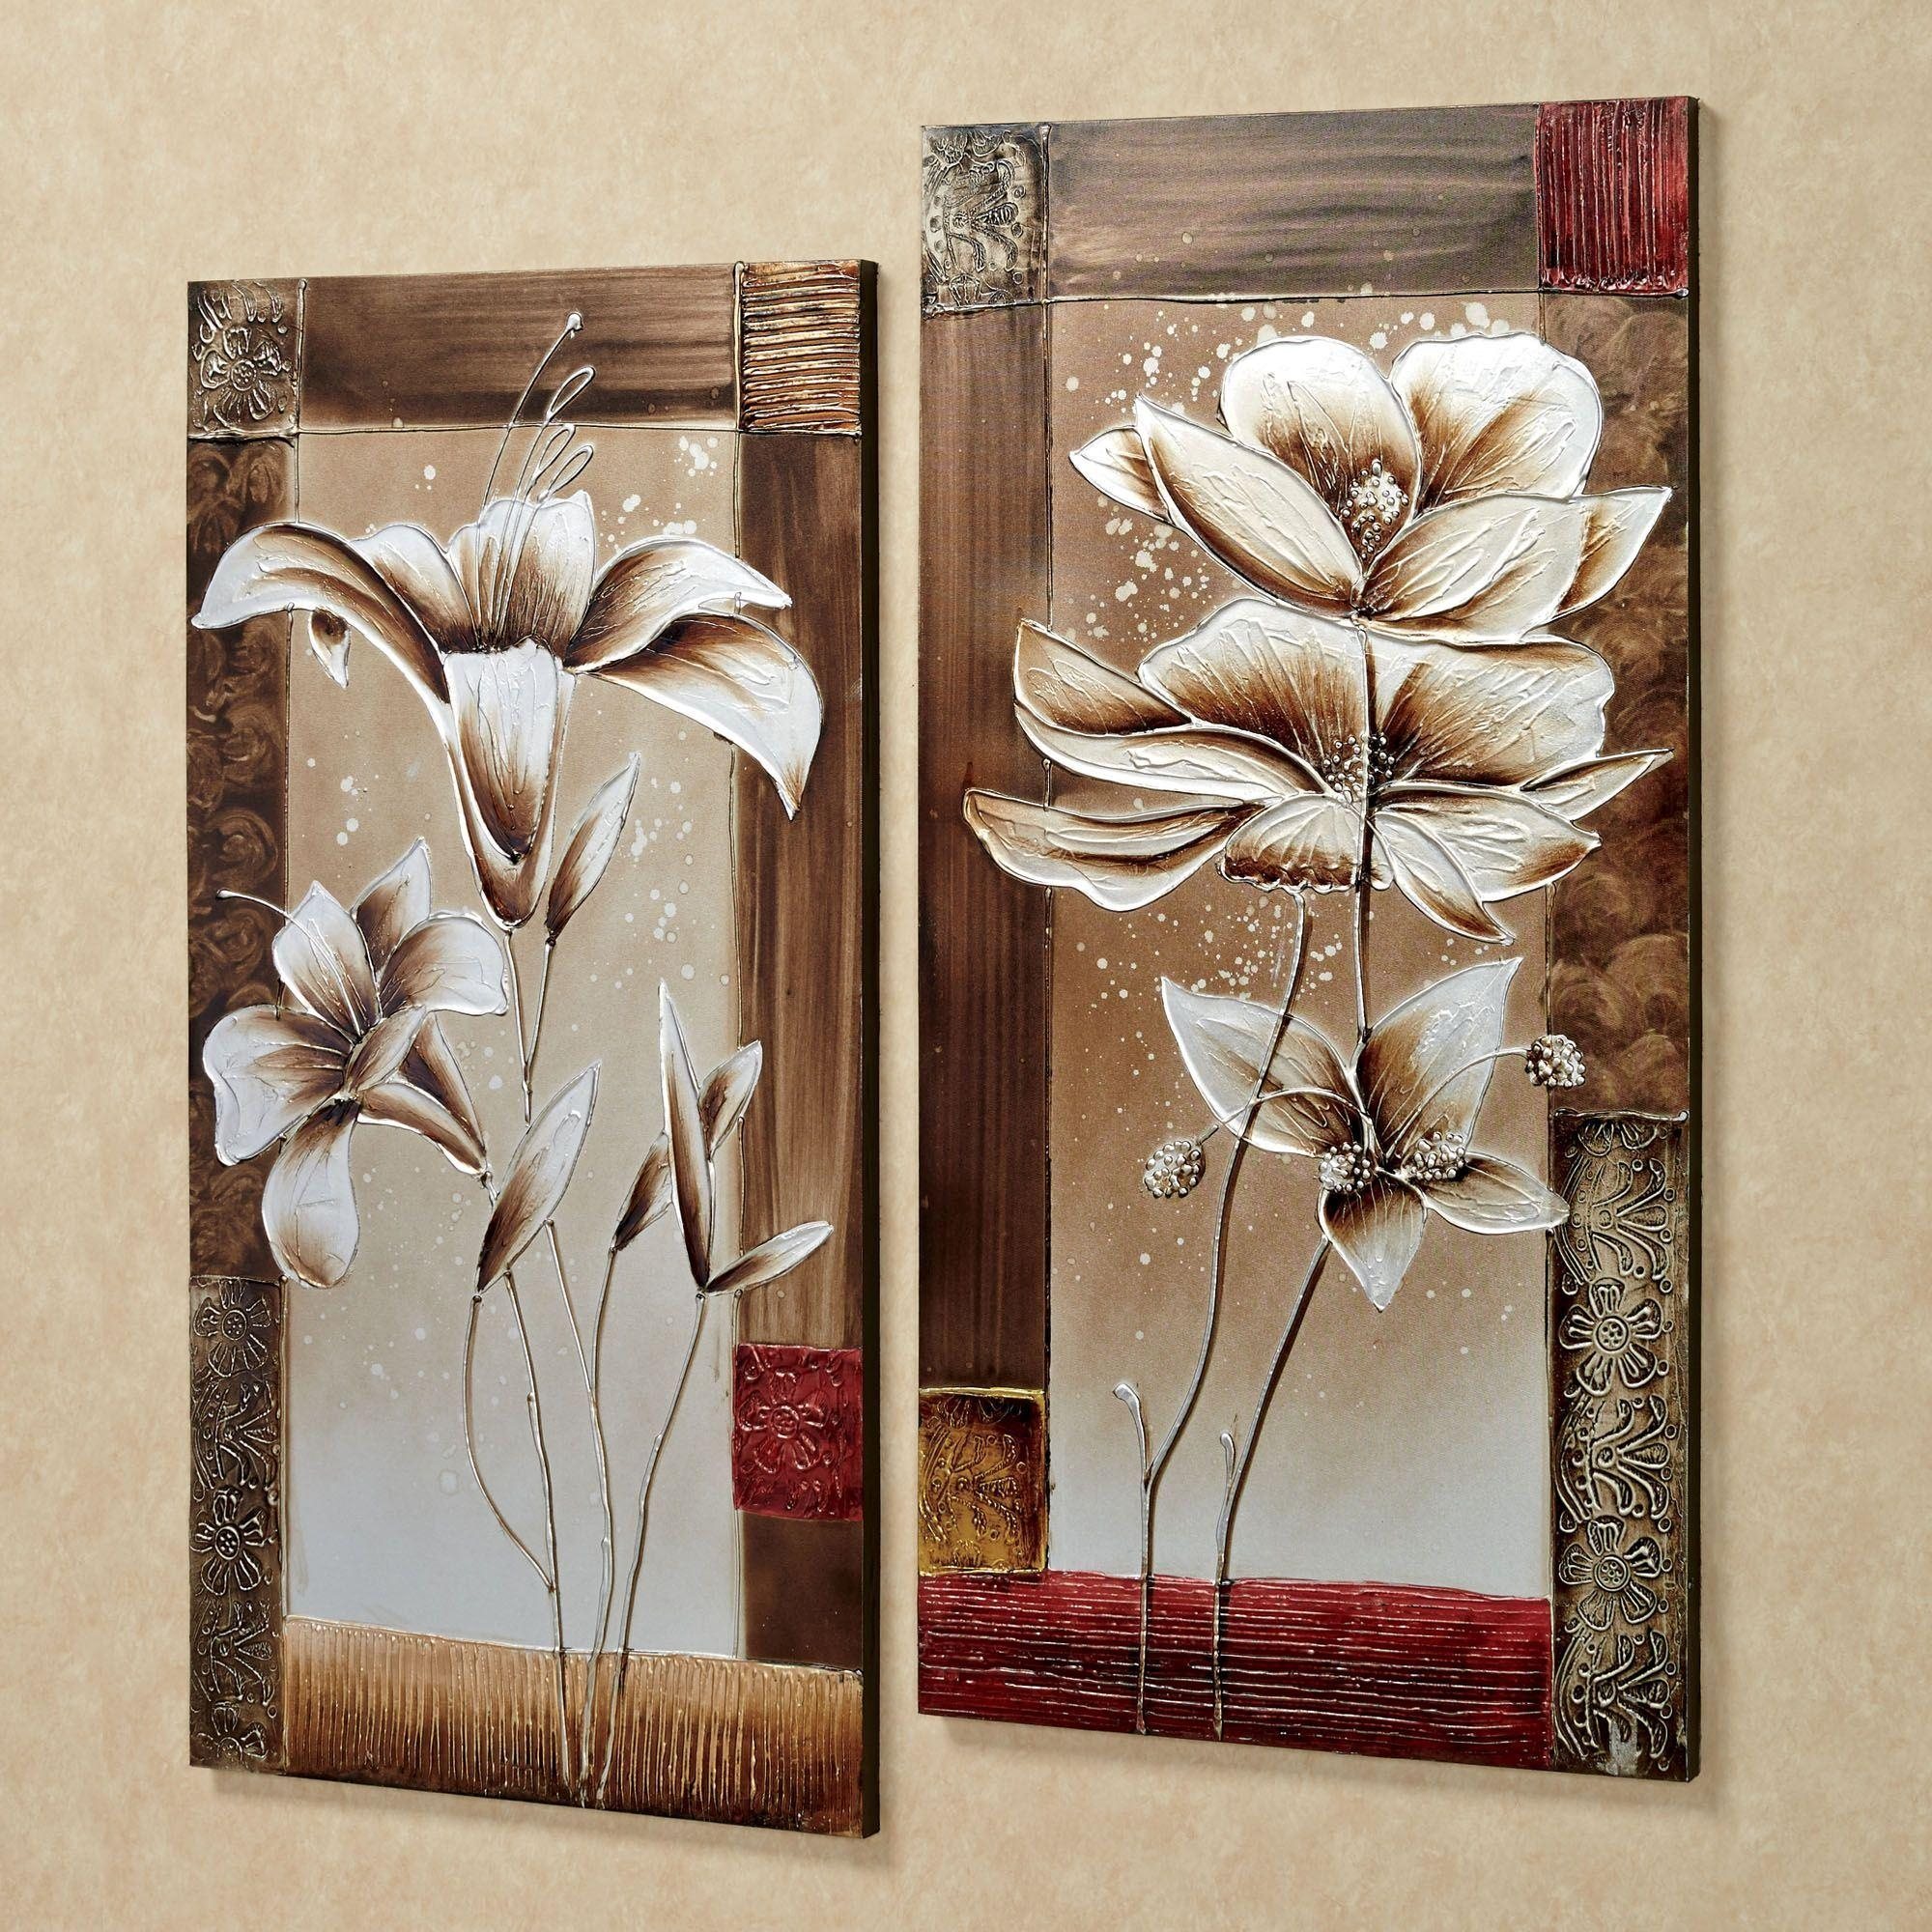 Petals Of Spring Floral Canvas Wall Art Set Regarding Floral Wall Art Canvas (View 2 of 20)